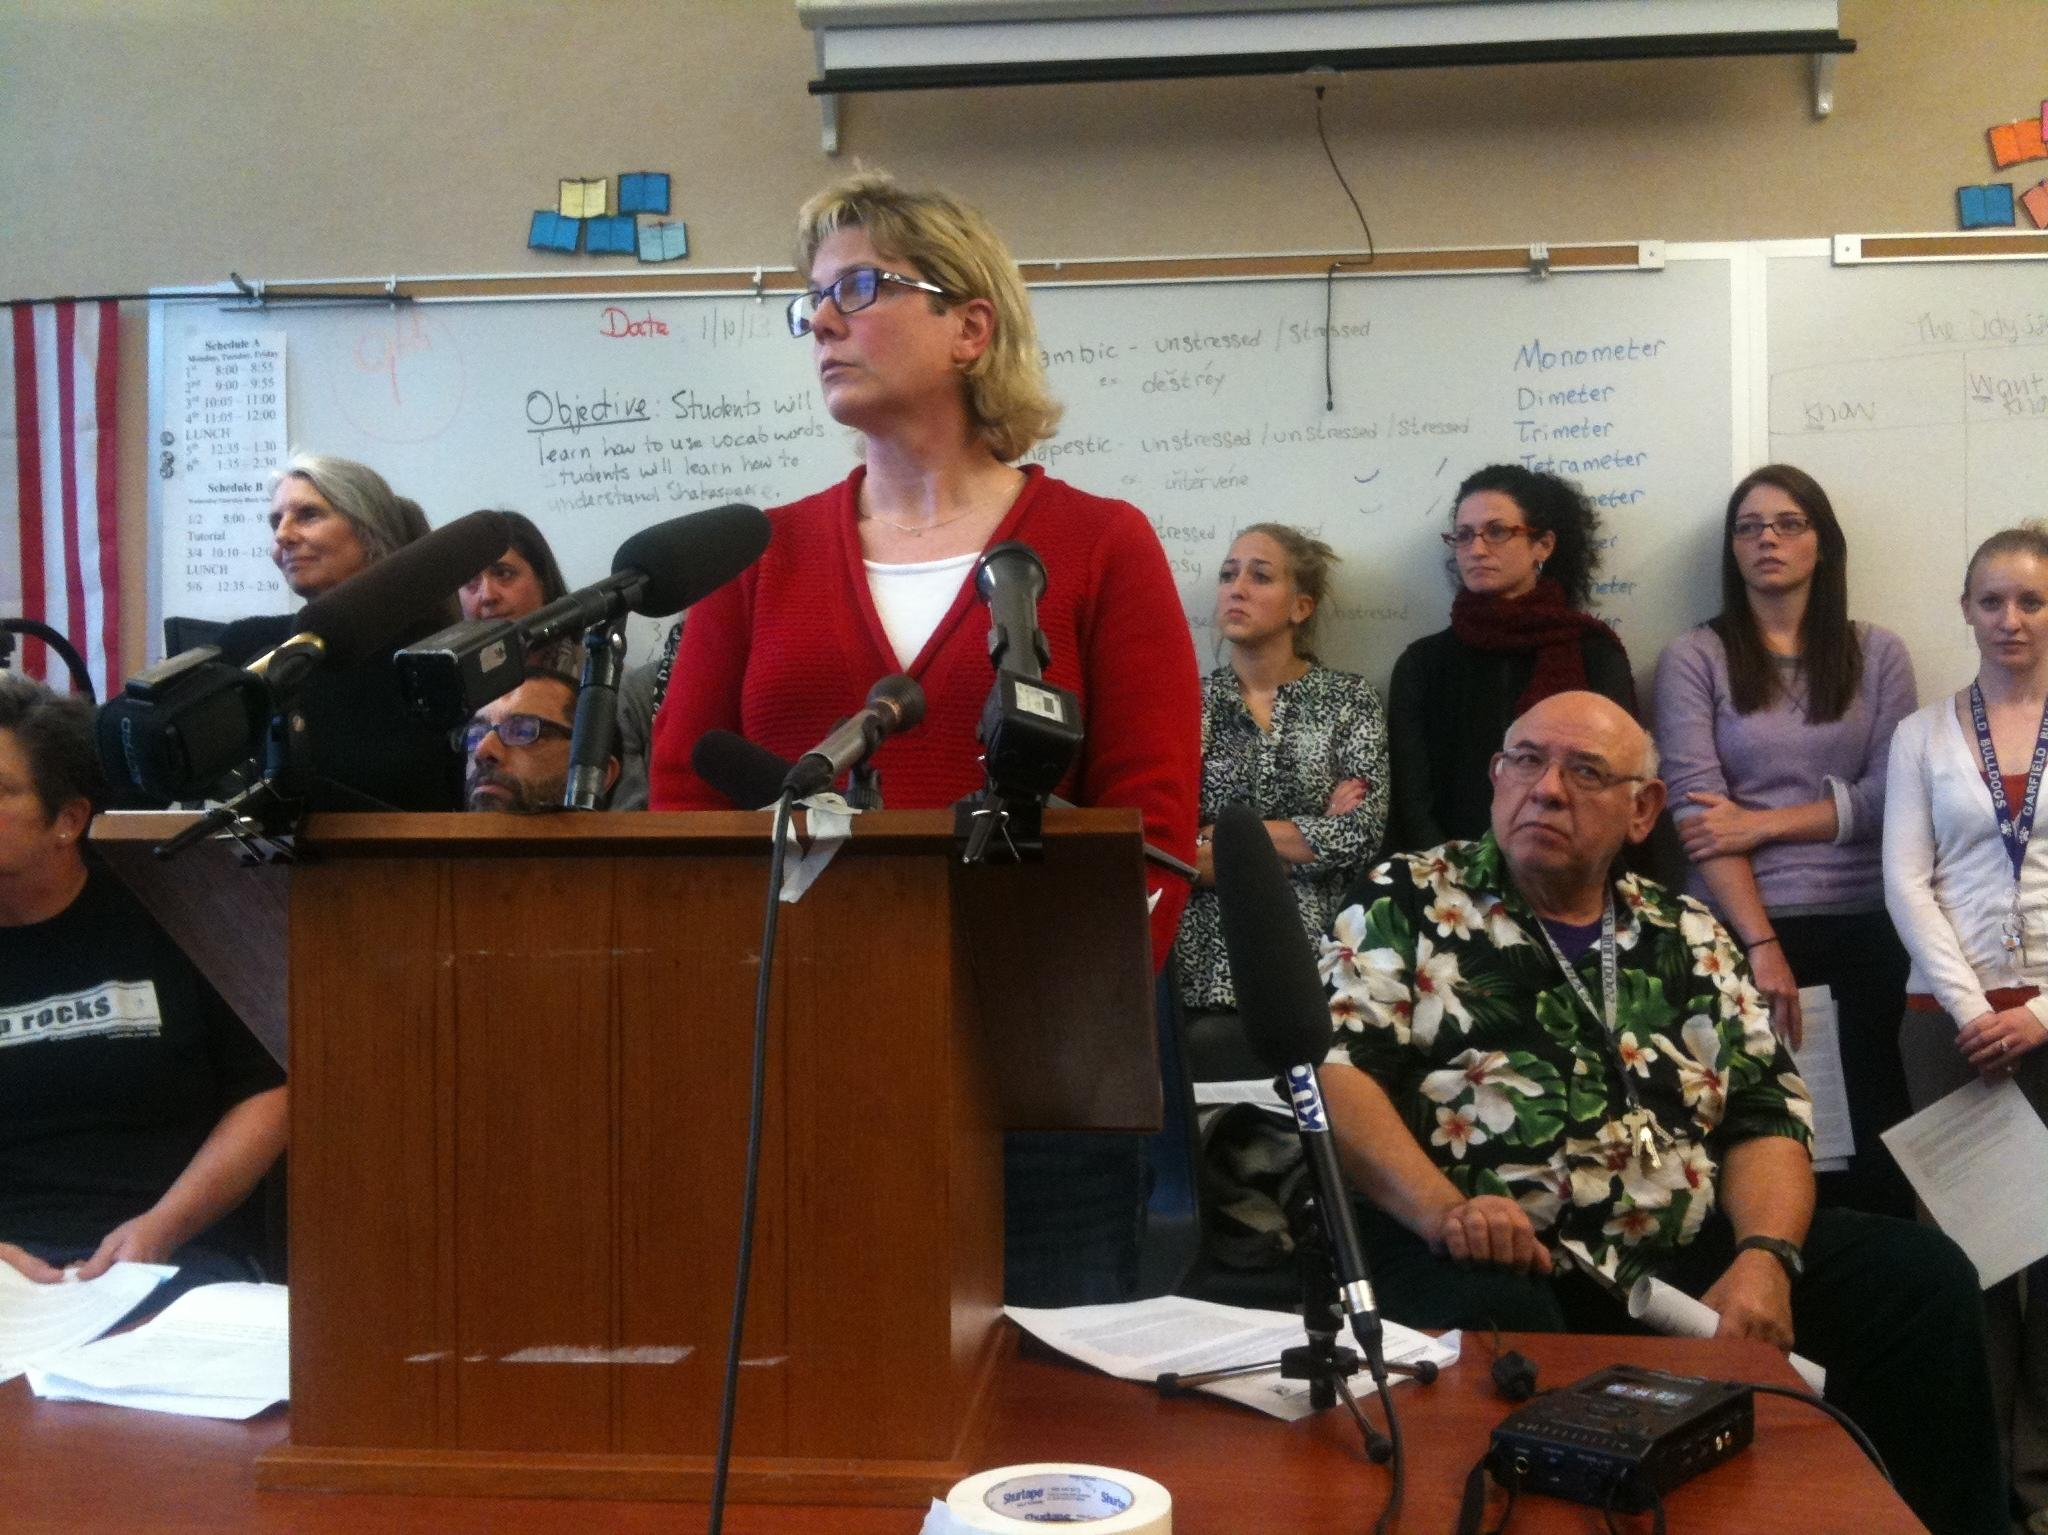 Seattle High Schools Teachers Toss Districts Test Vermont Public